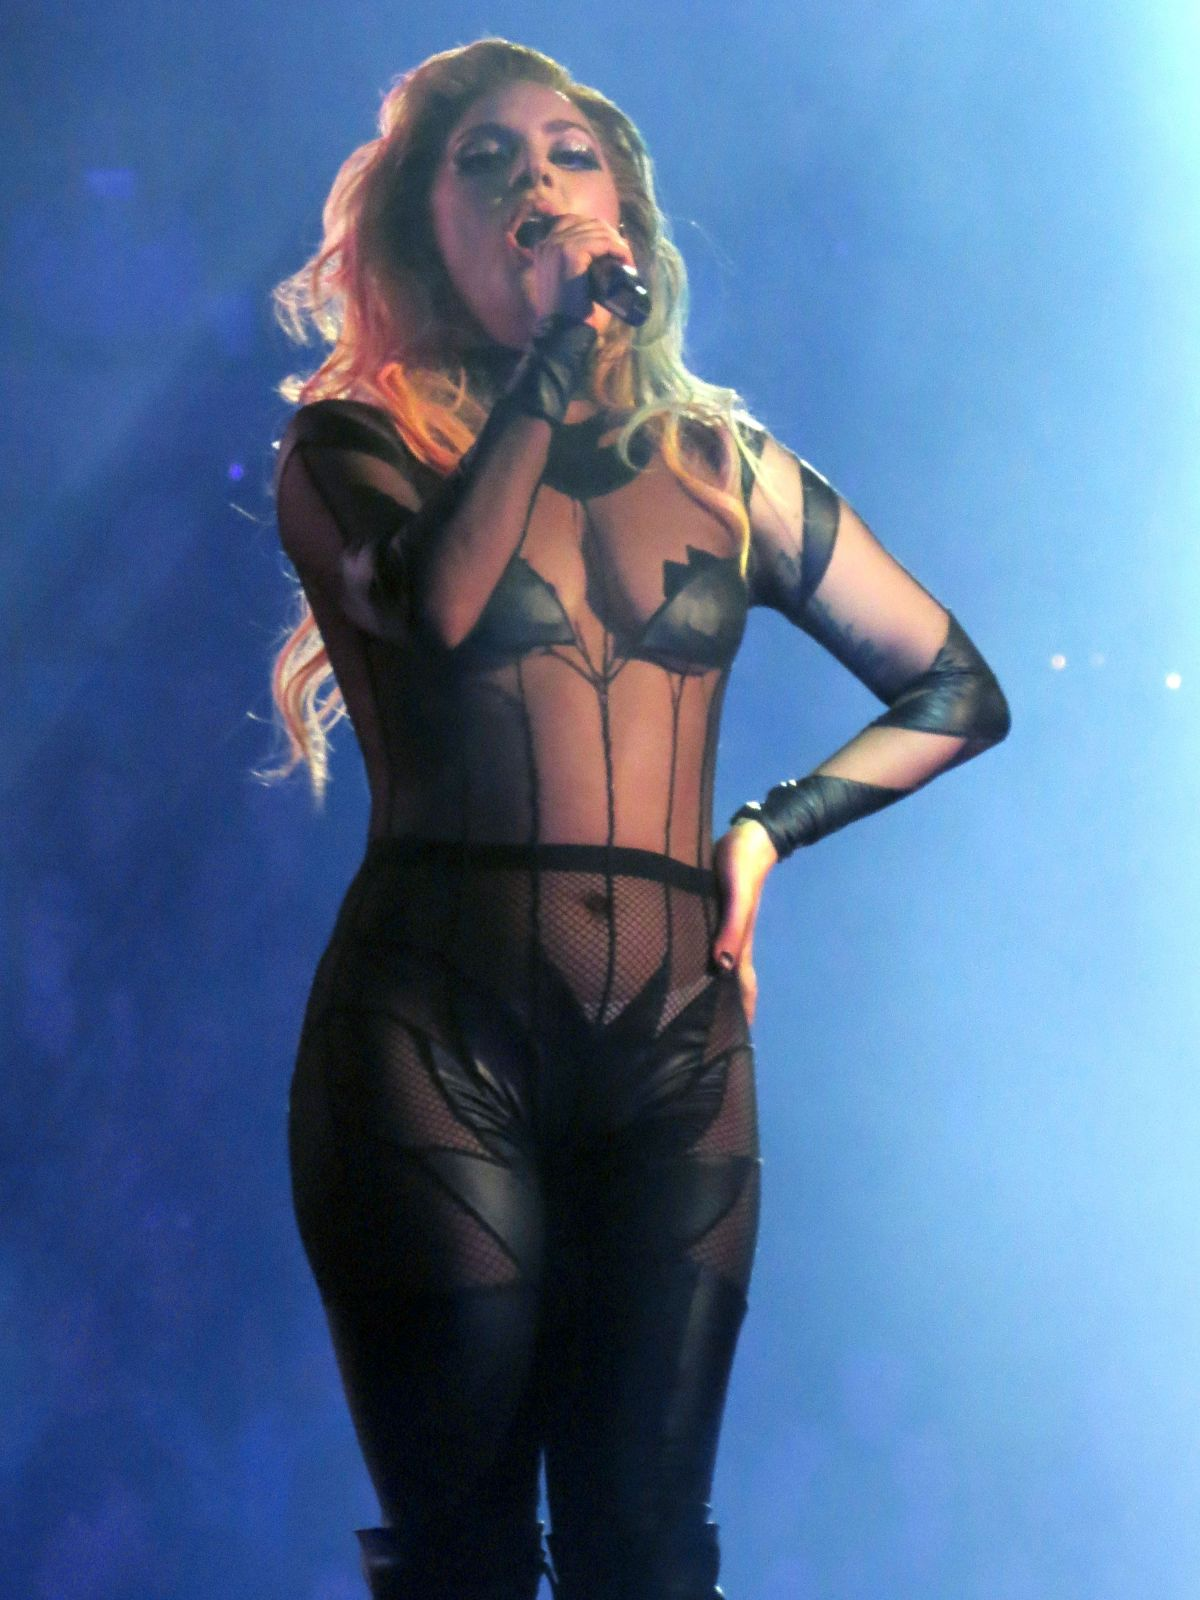 Highlights From Lady Gagas First Show Of The Joanne World Tour